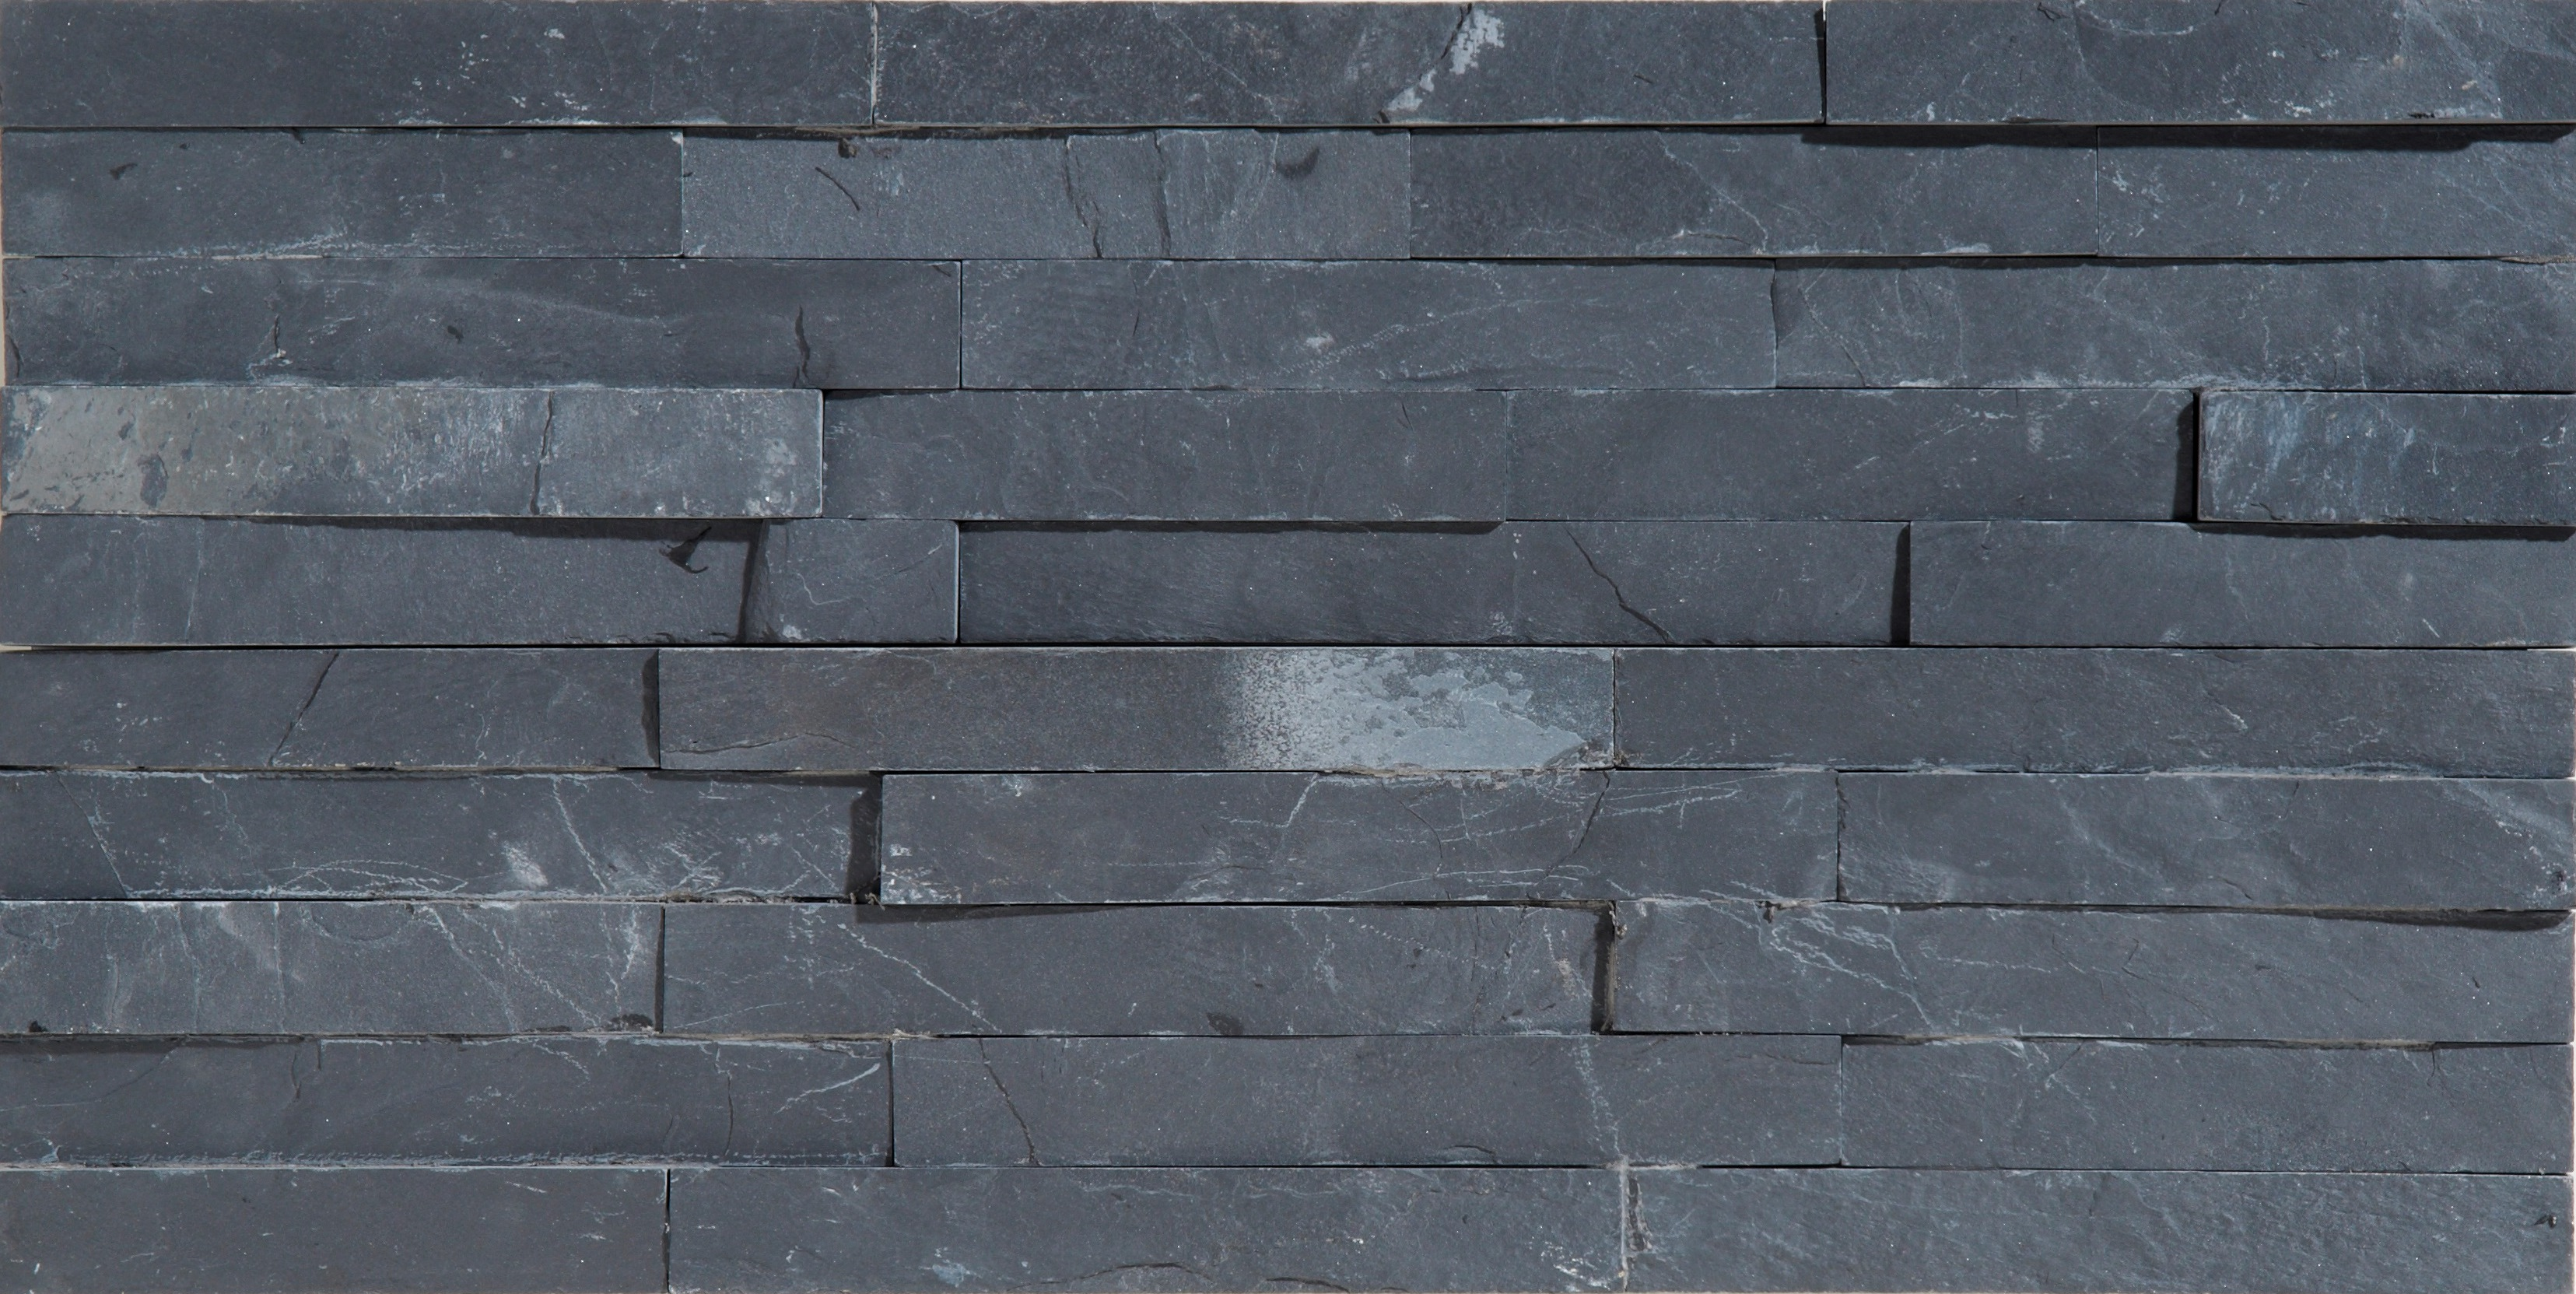 China Black Ledgestone Petraslate Tile Amp Stone Is A